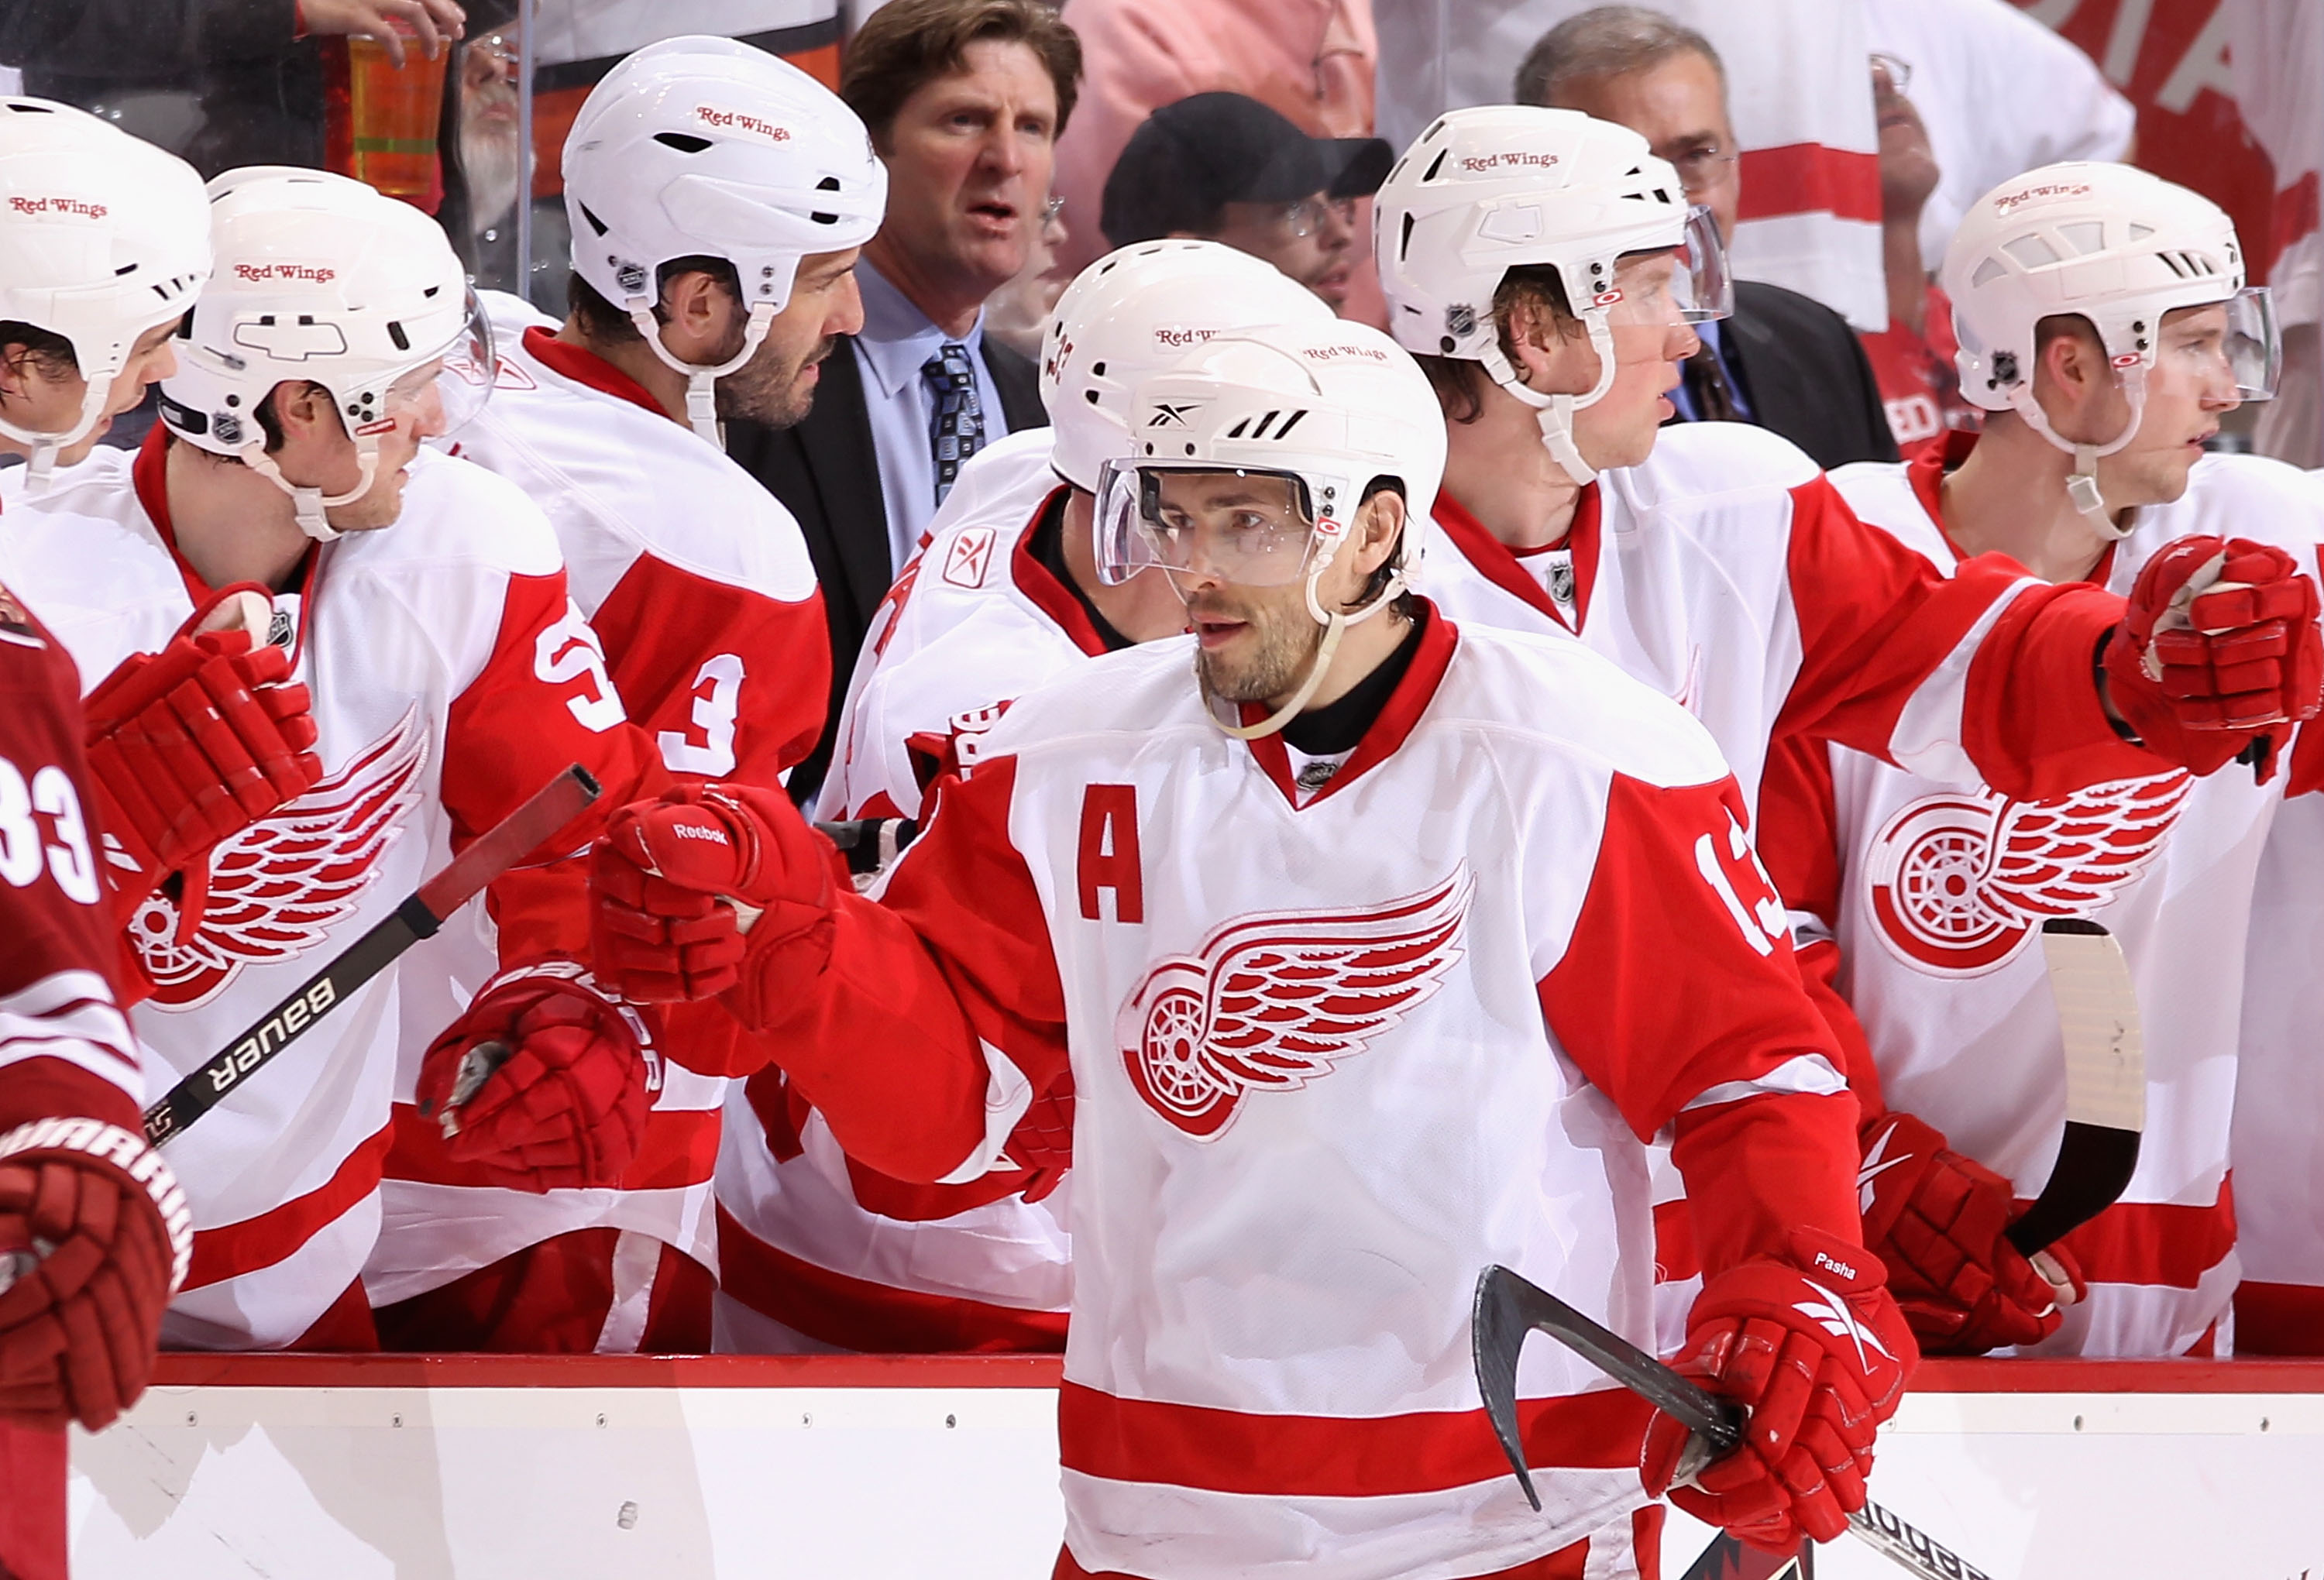 GLENDALE, AZ - APRIL 16:  Pavel Datsyuk #13 of the Detroit Red Wings celebrates with teammates on the bench after scoring a second period goal against the Phoenix Coyotes in Game Two of the Western Conference Quarterfinals during the 2010 NHL Stanley Cup